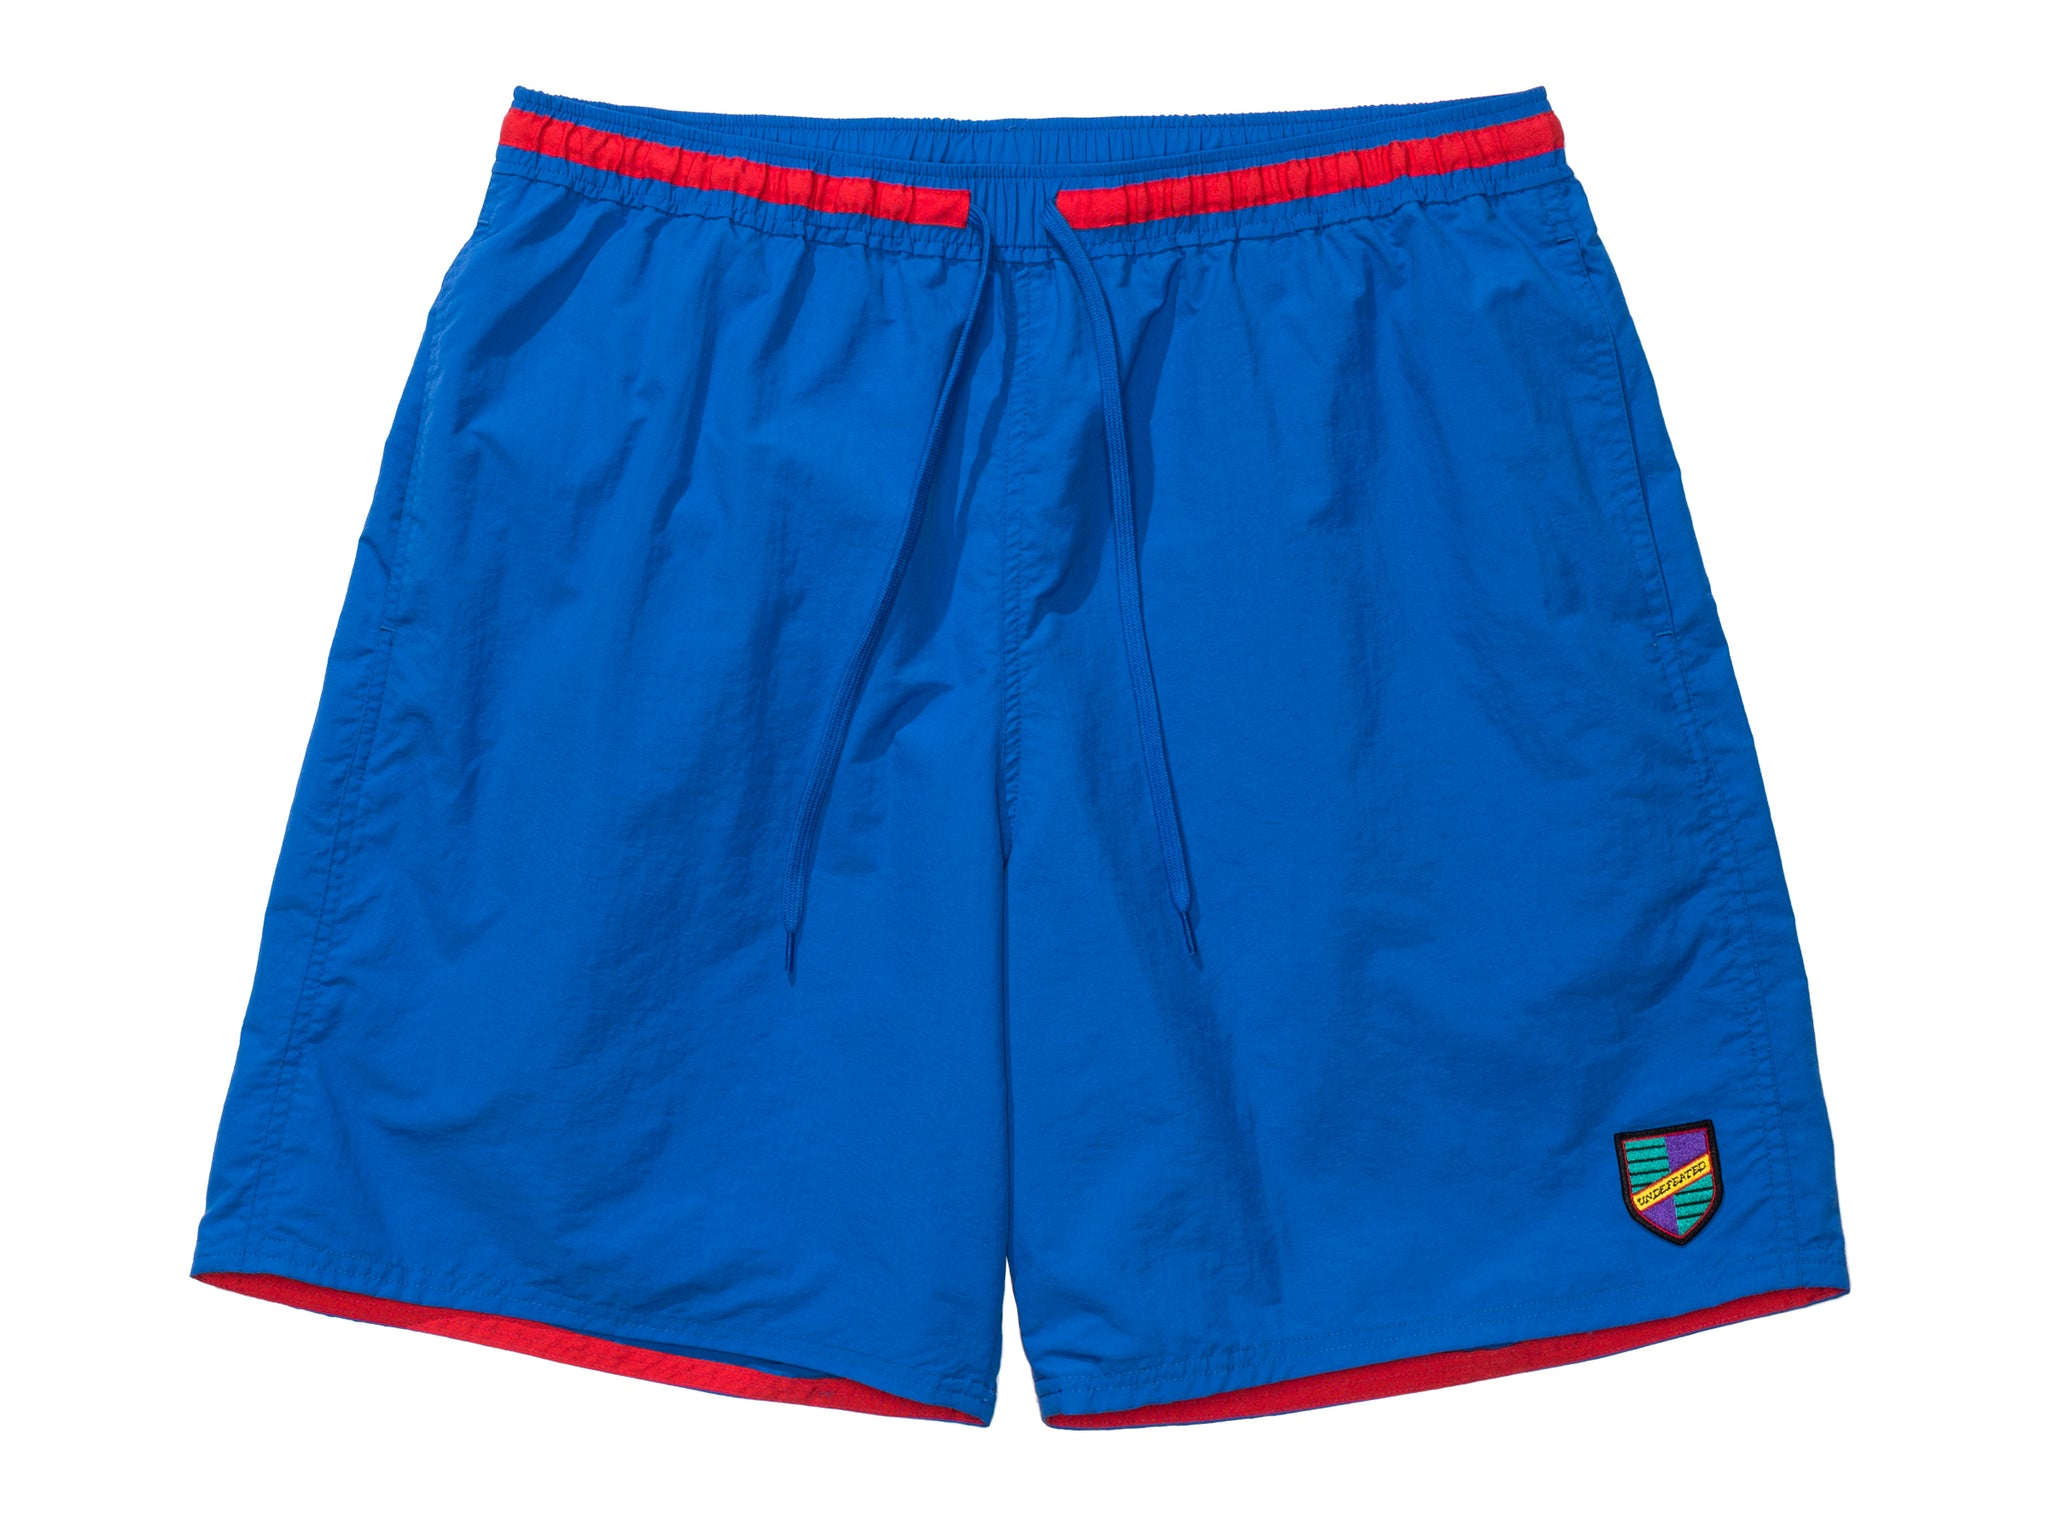 UNDEFEATED TRIMMED SHORT